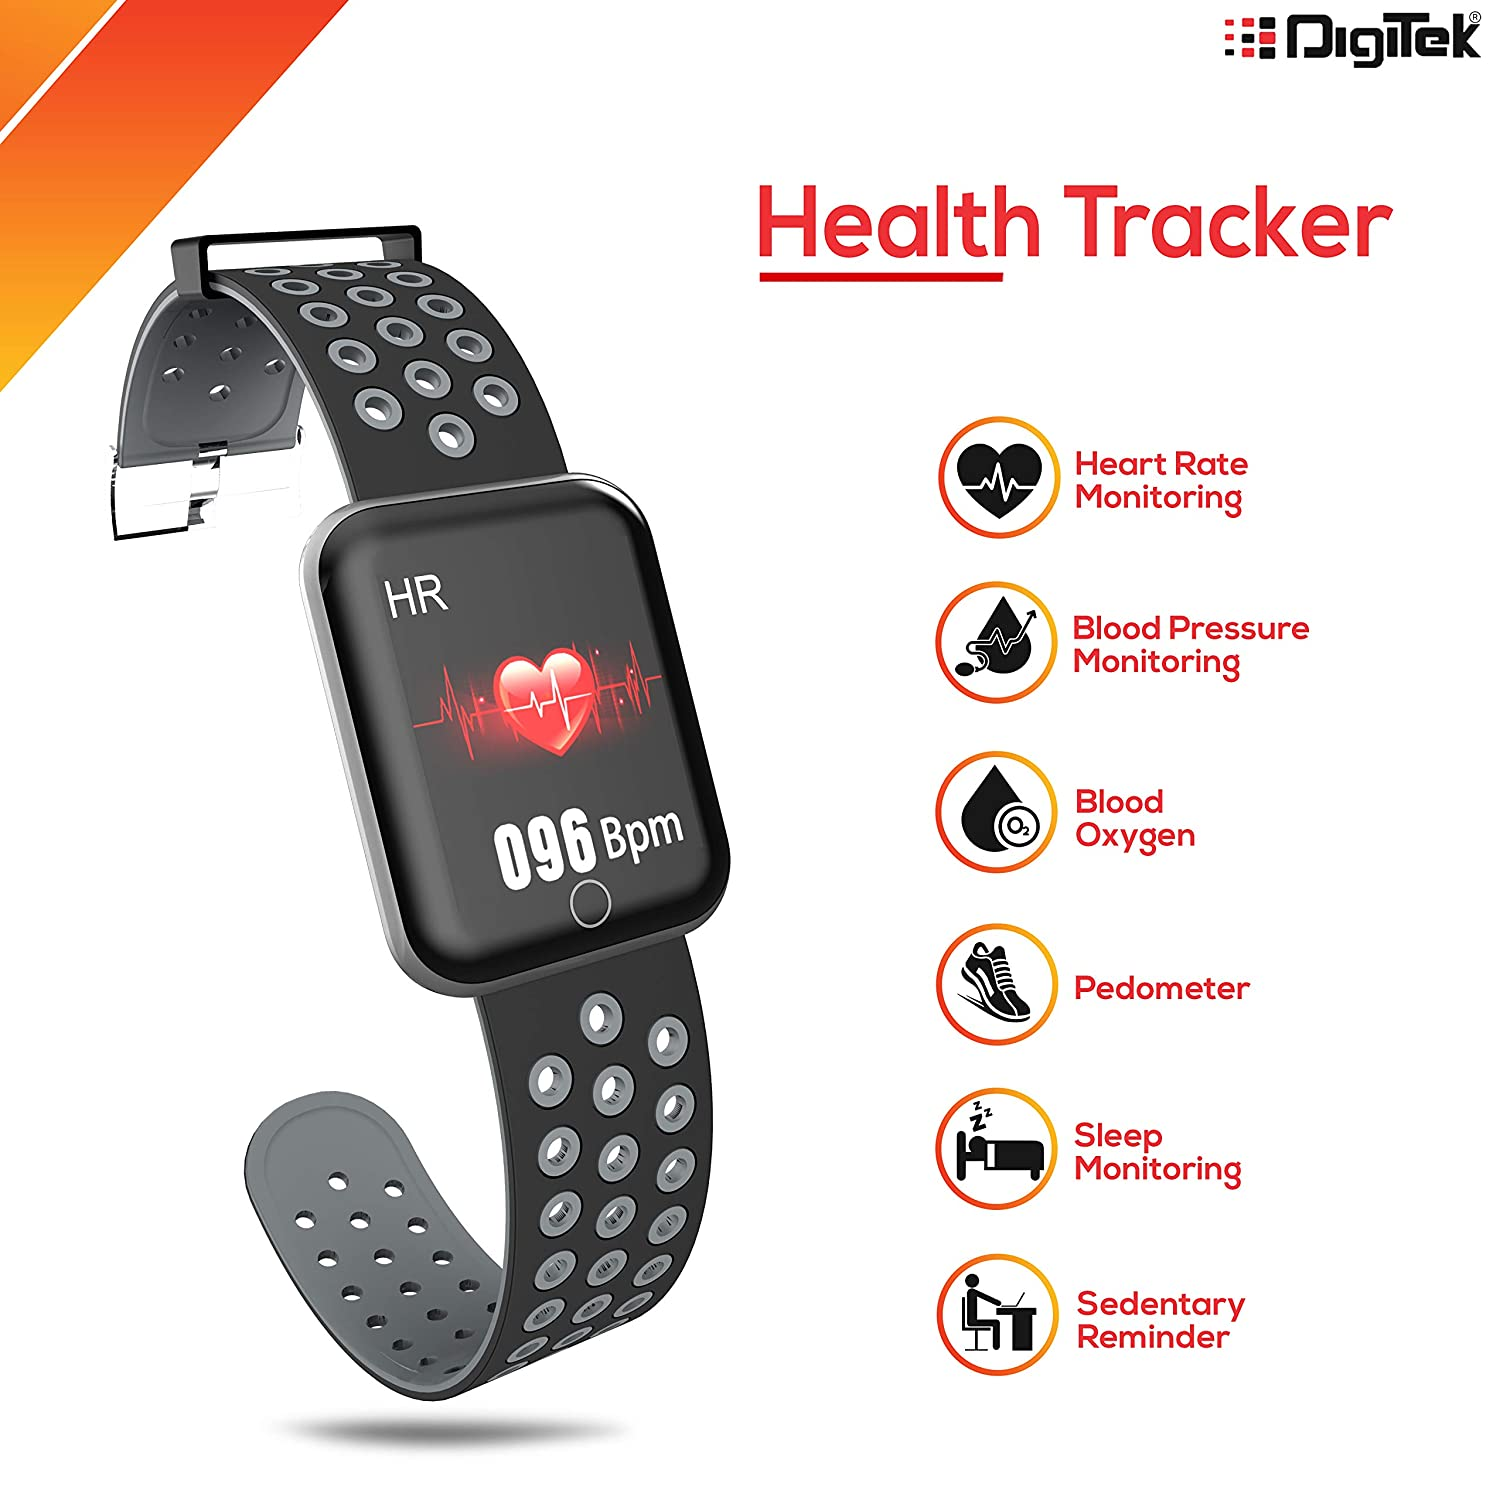 Digitek DSW-001 Fitness SmartWatch with Multi-Sports Mode | All Health Activity Tracking with Pedometer, BP Monitor and Heart Rate Monitoring | for Men and Women (Black)